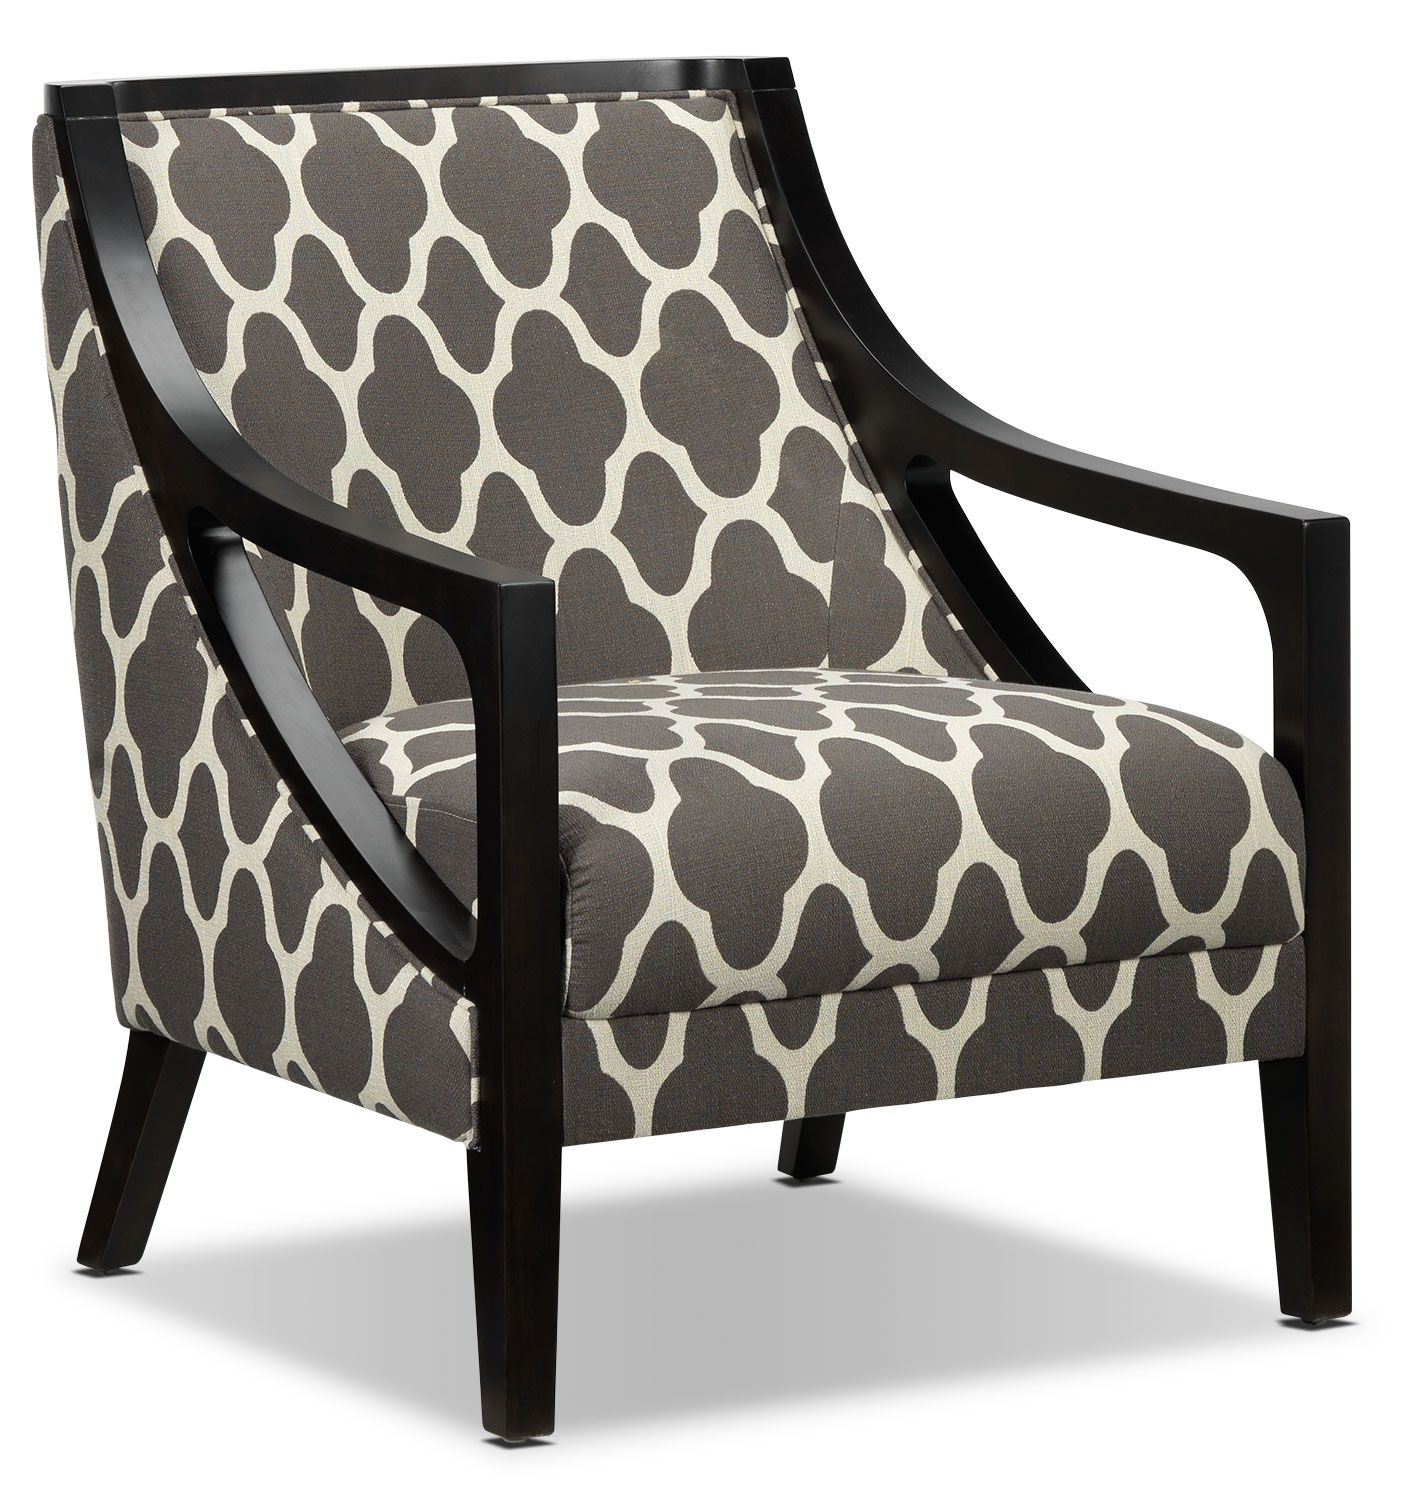 Pattern of Elegance. The Minera accent chair's thoughtful